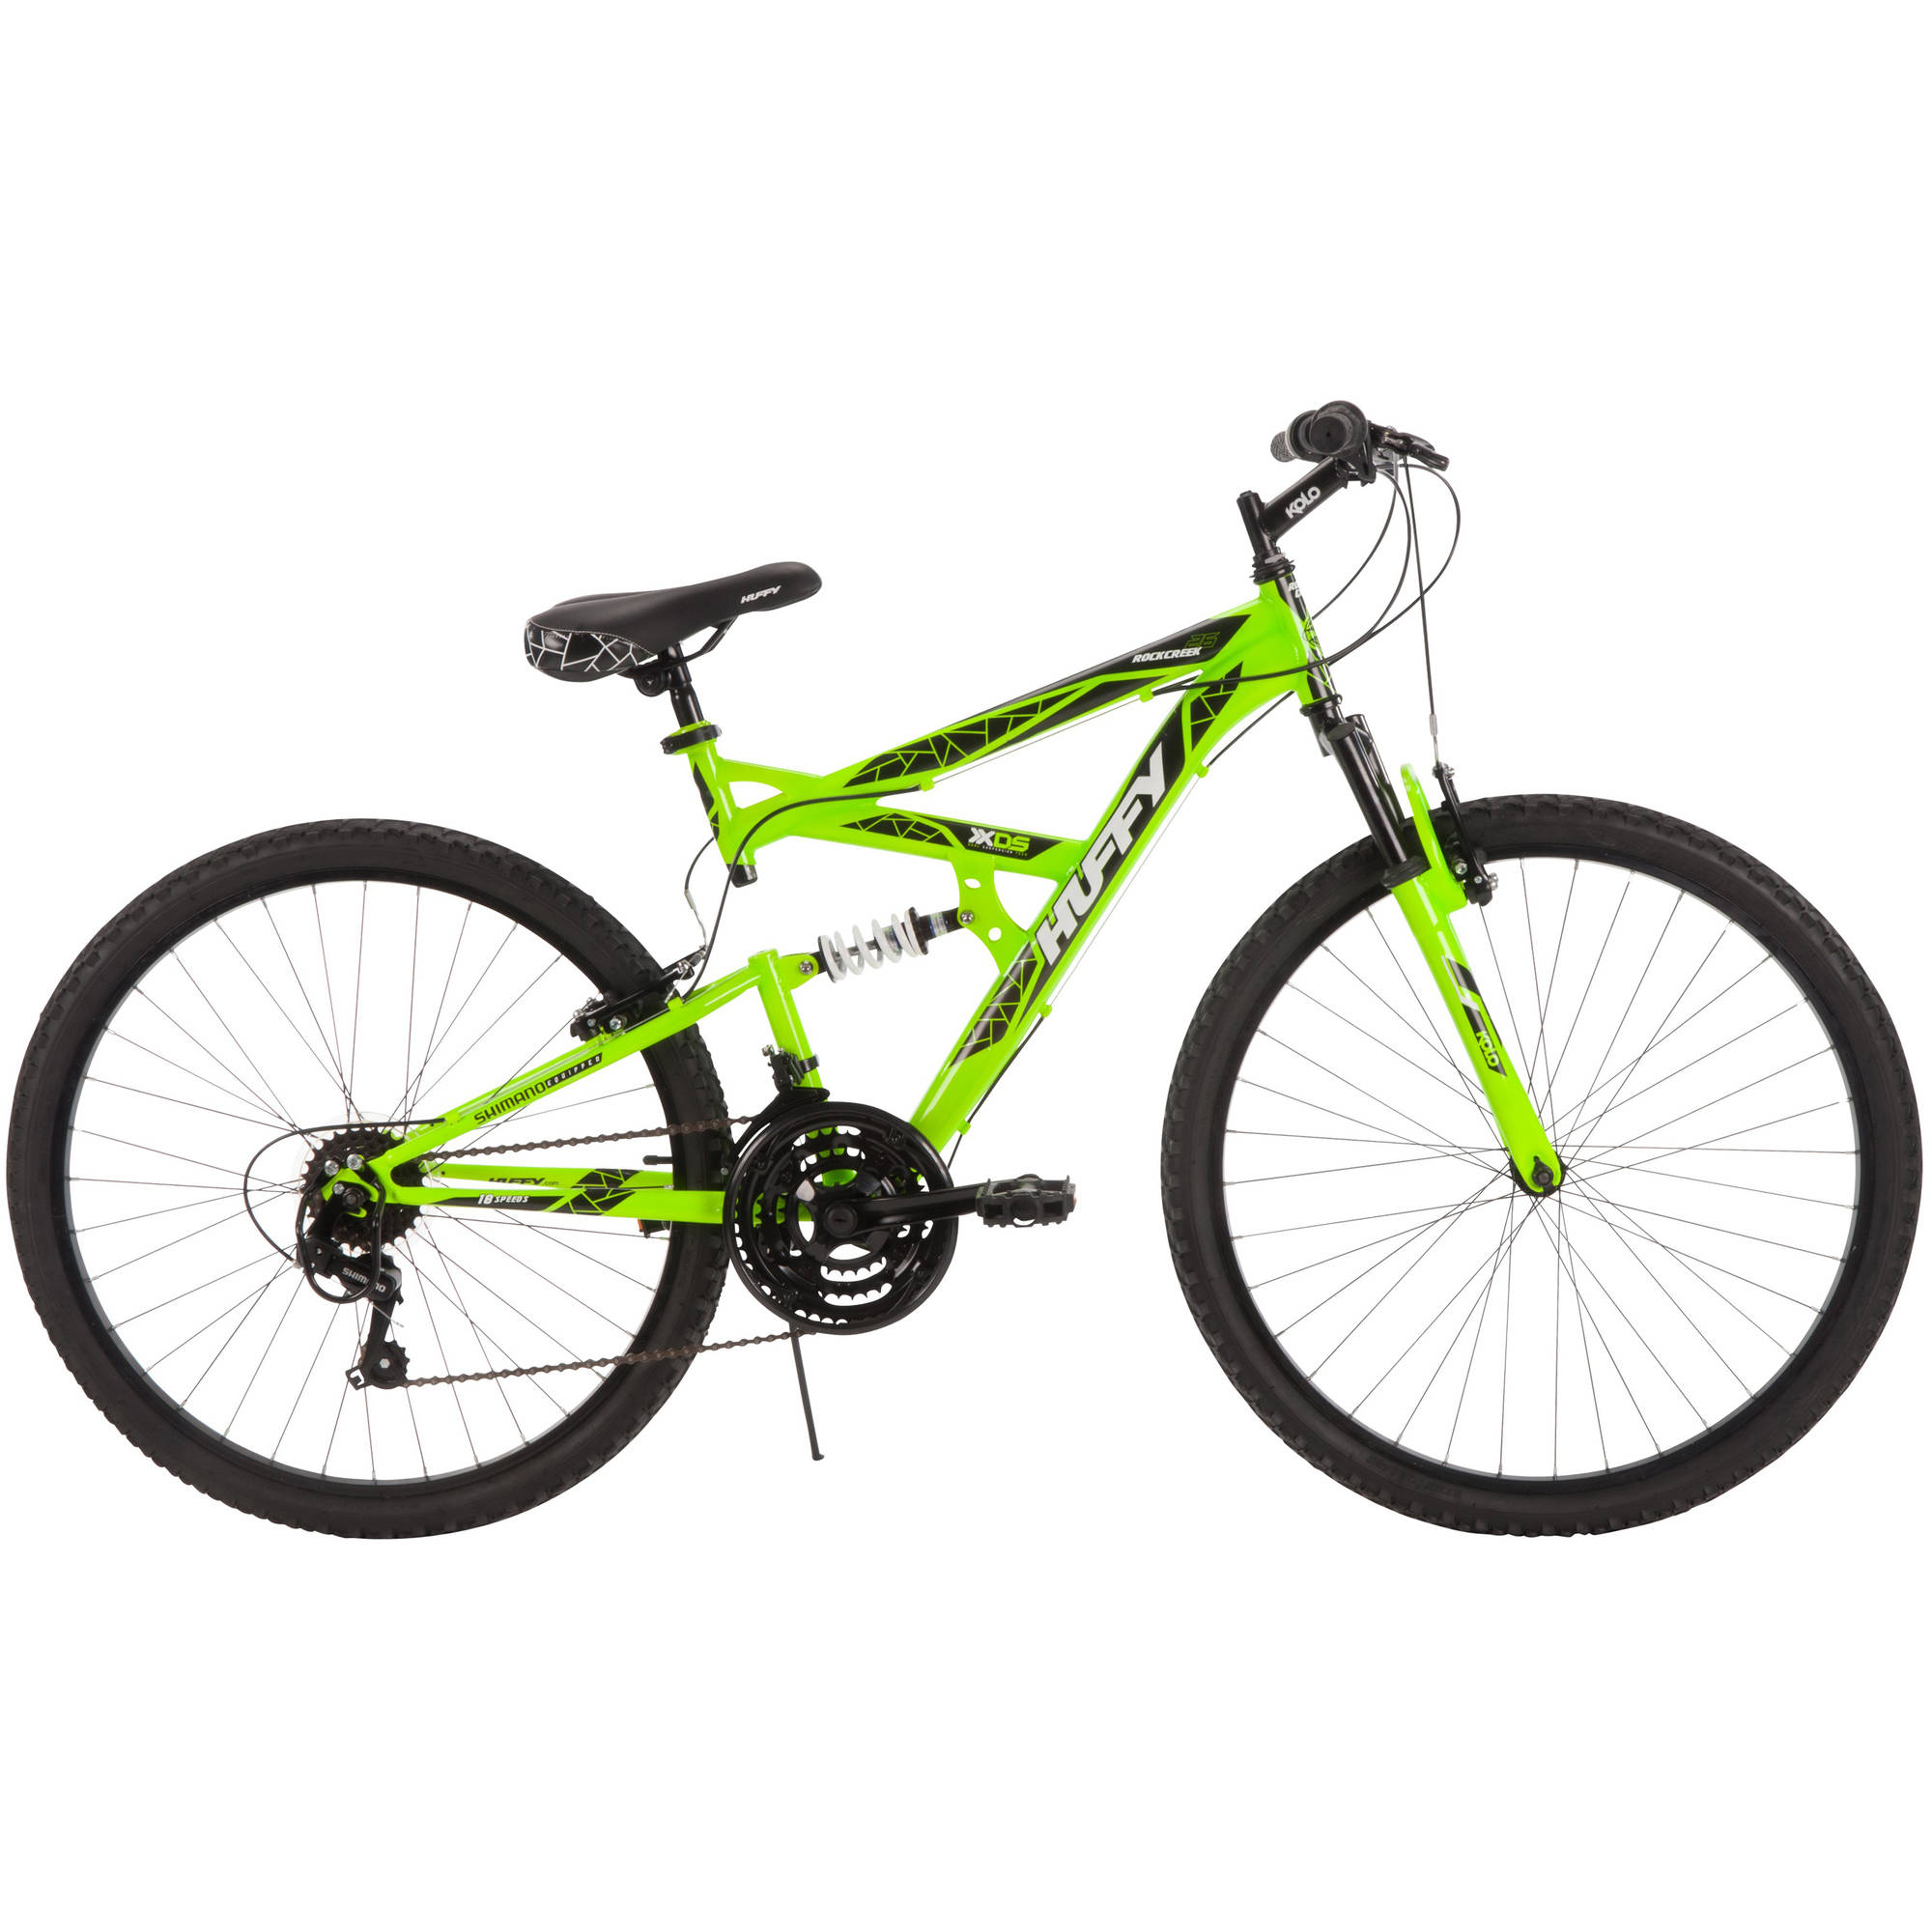 "26"" Huffy Men's Rock Creek Mountain Bike, Green"